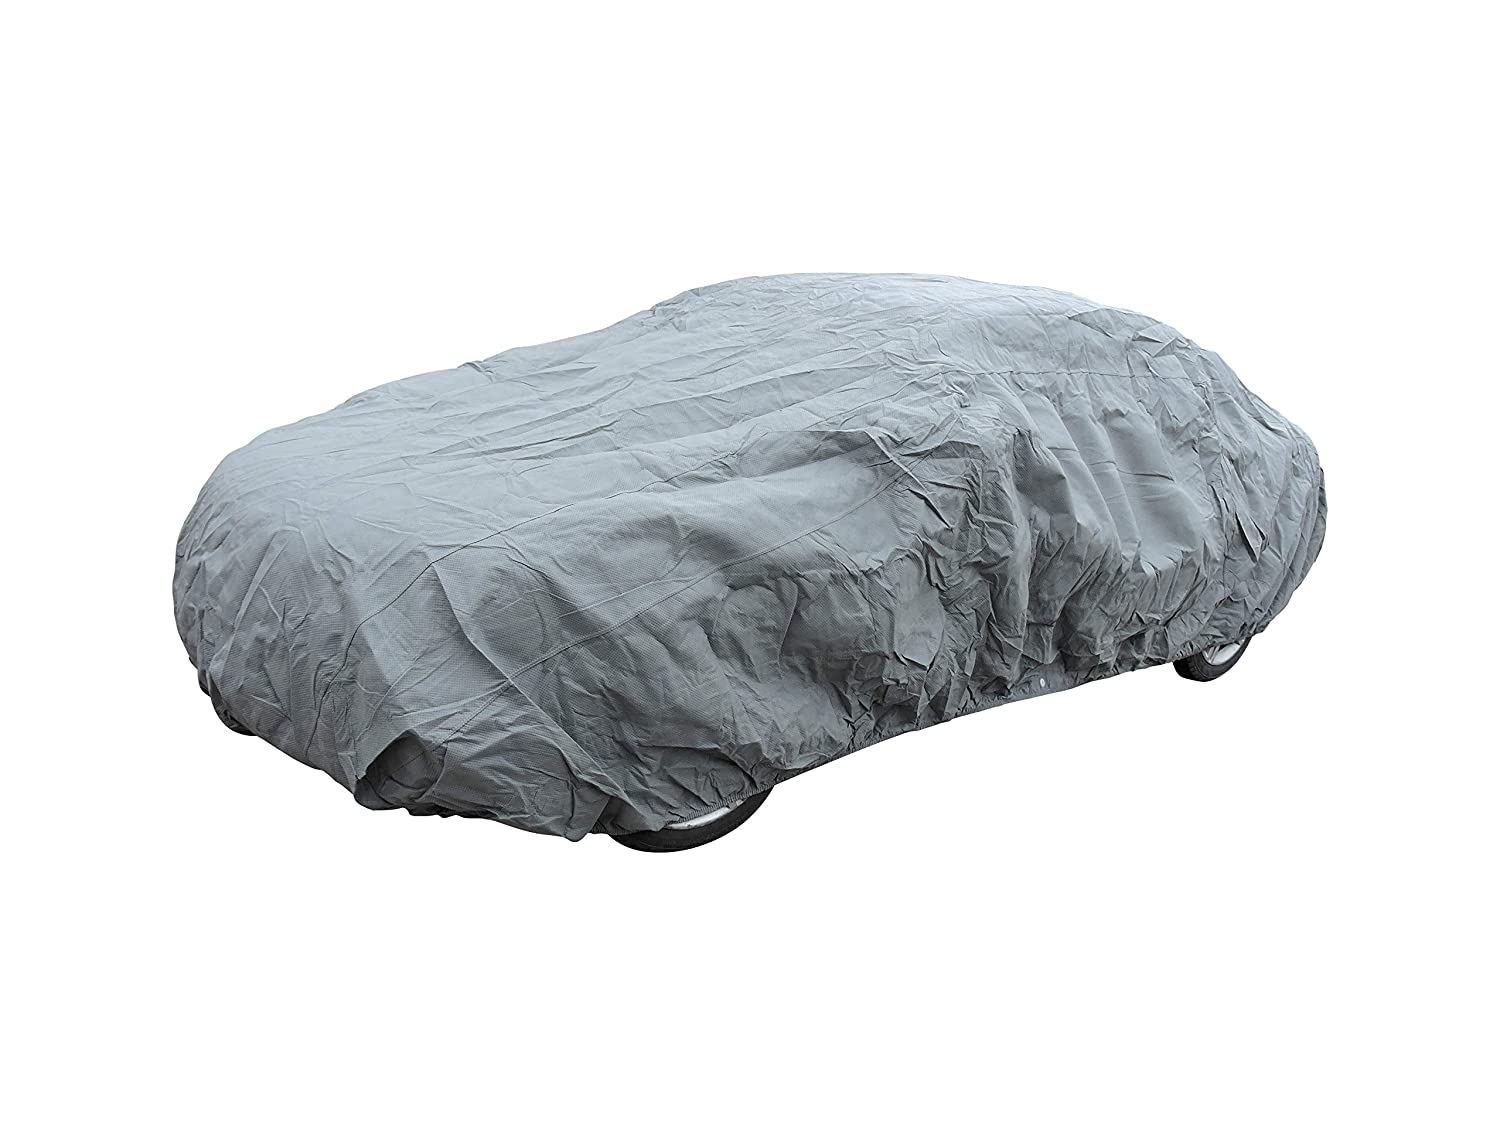 Ultimate Touch Car Cover XLarge Sedan to 22 Weatherproof and Breathable Car Covers with Soft 160g Fabric for Total Protection